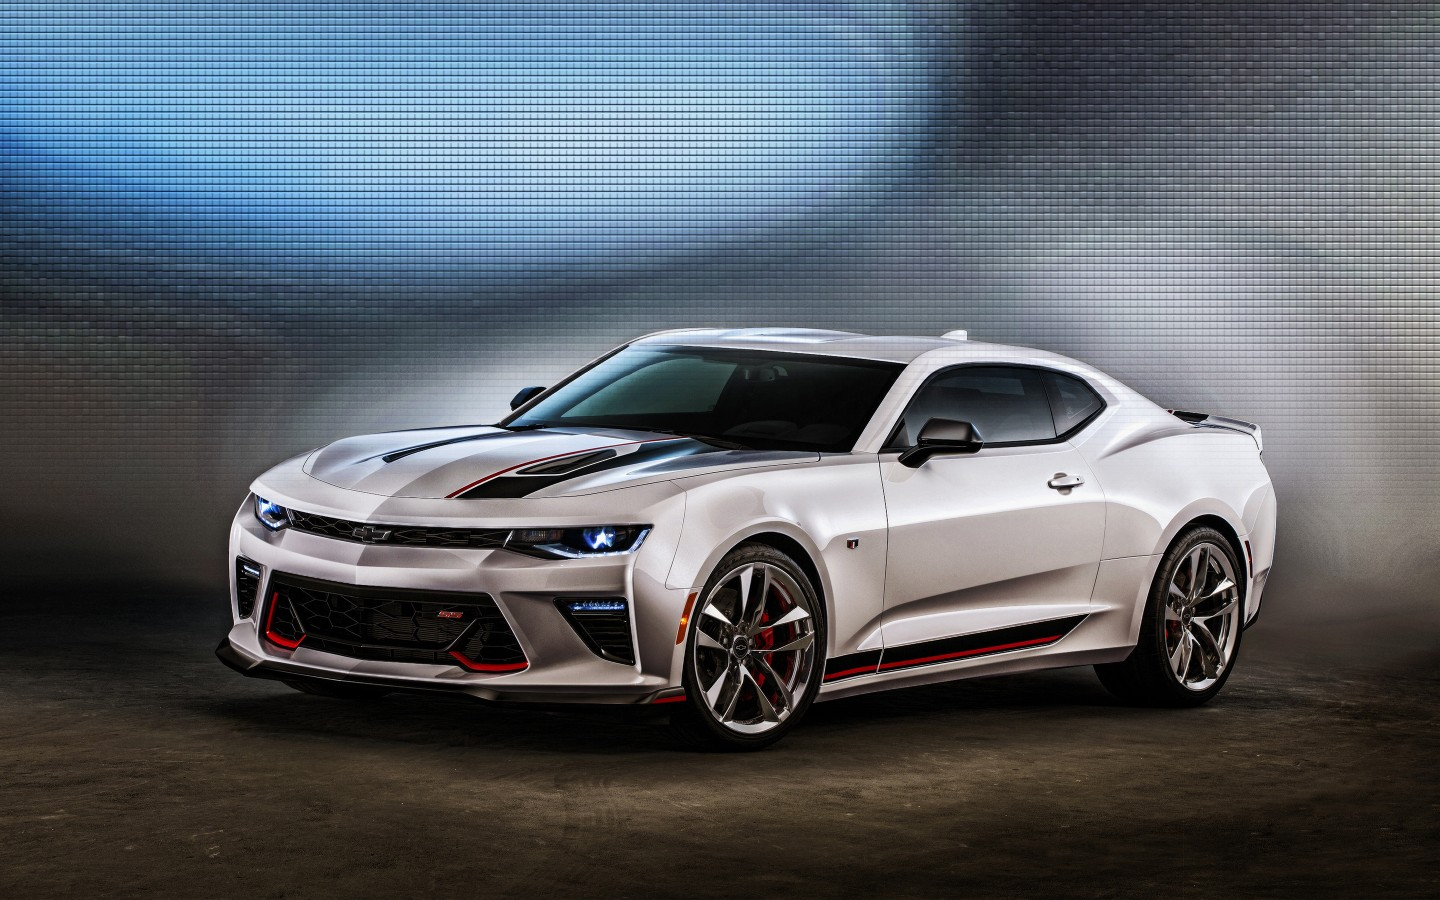 2016 Chevrolet Camaro Sema Wallpaper Hd Car Wallpapers